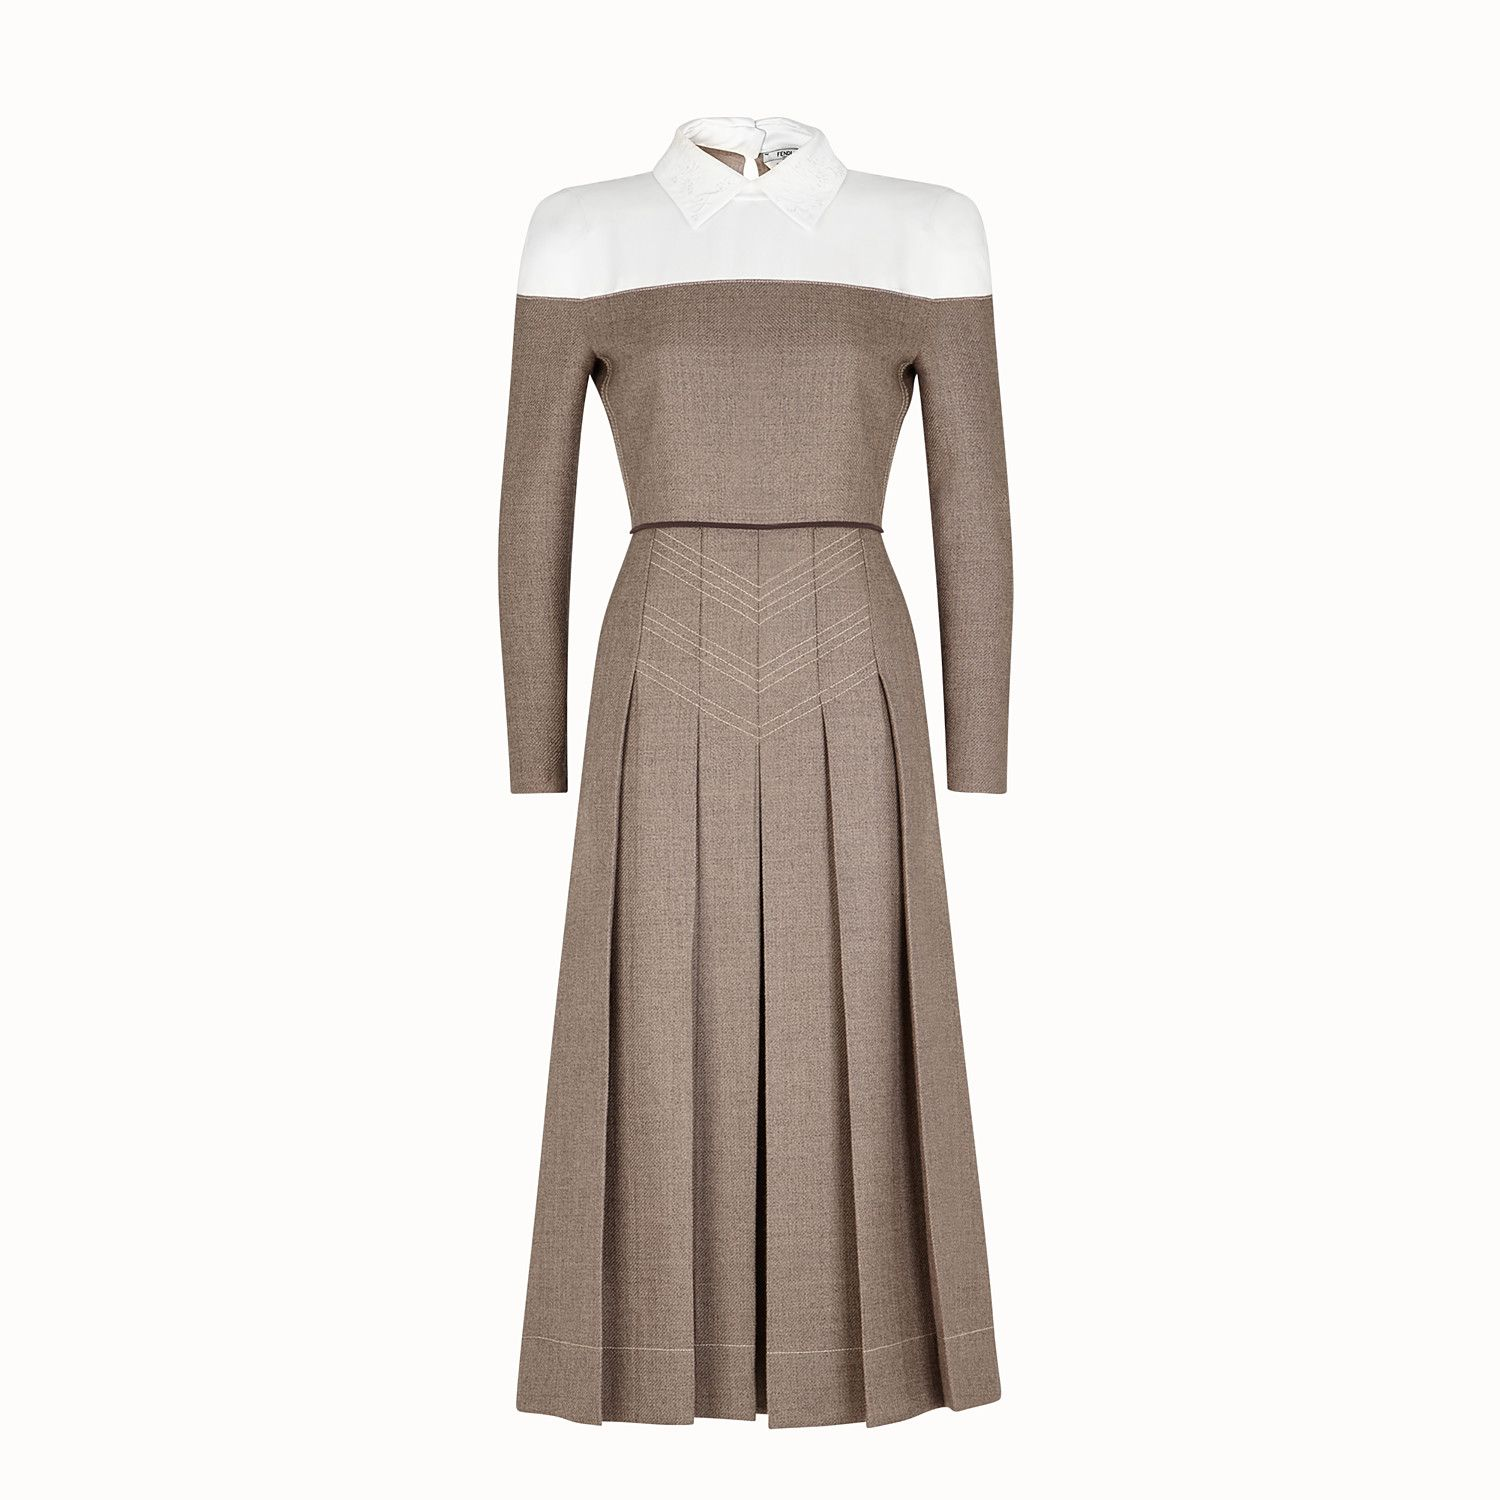 Fendi Robe Robe En Laine Grisaille View 1 Zoom Éレス ïンピース